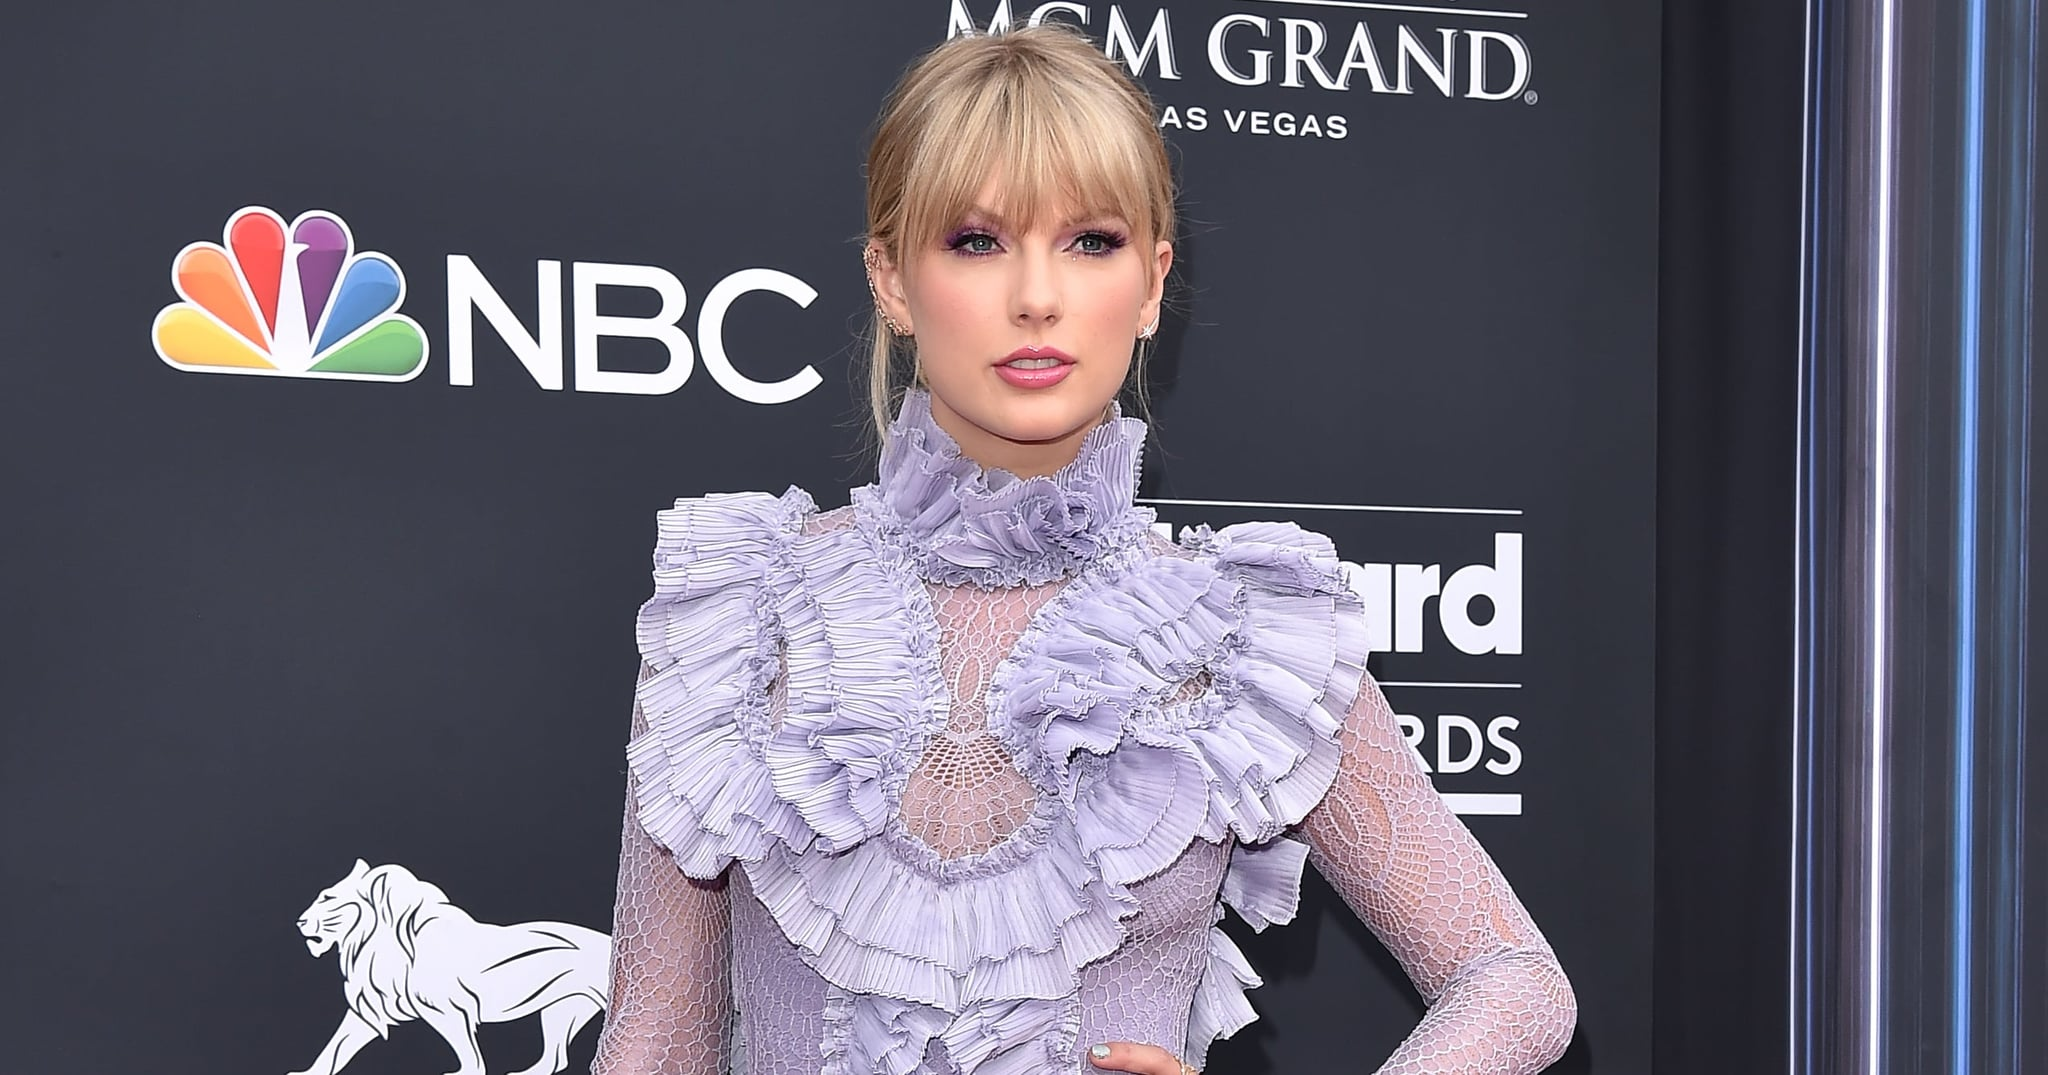 Uh-Oh! Taylor Swift Fans Noticed This Typo on Her Official Merchandise